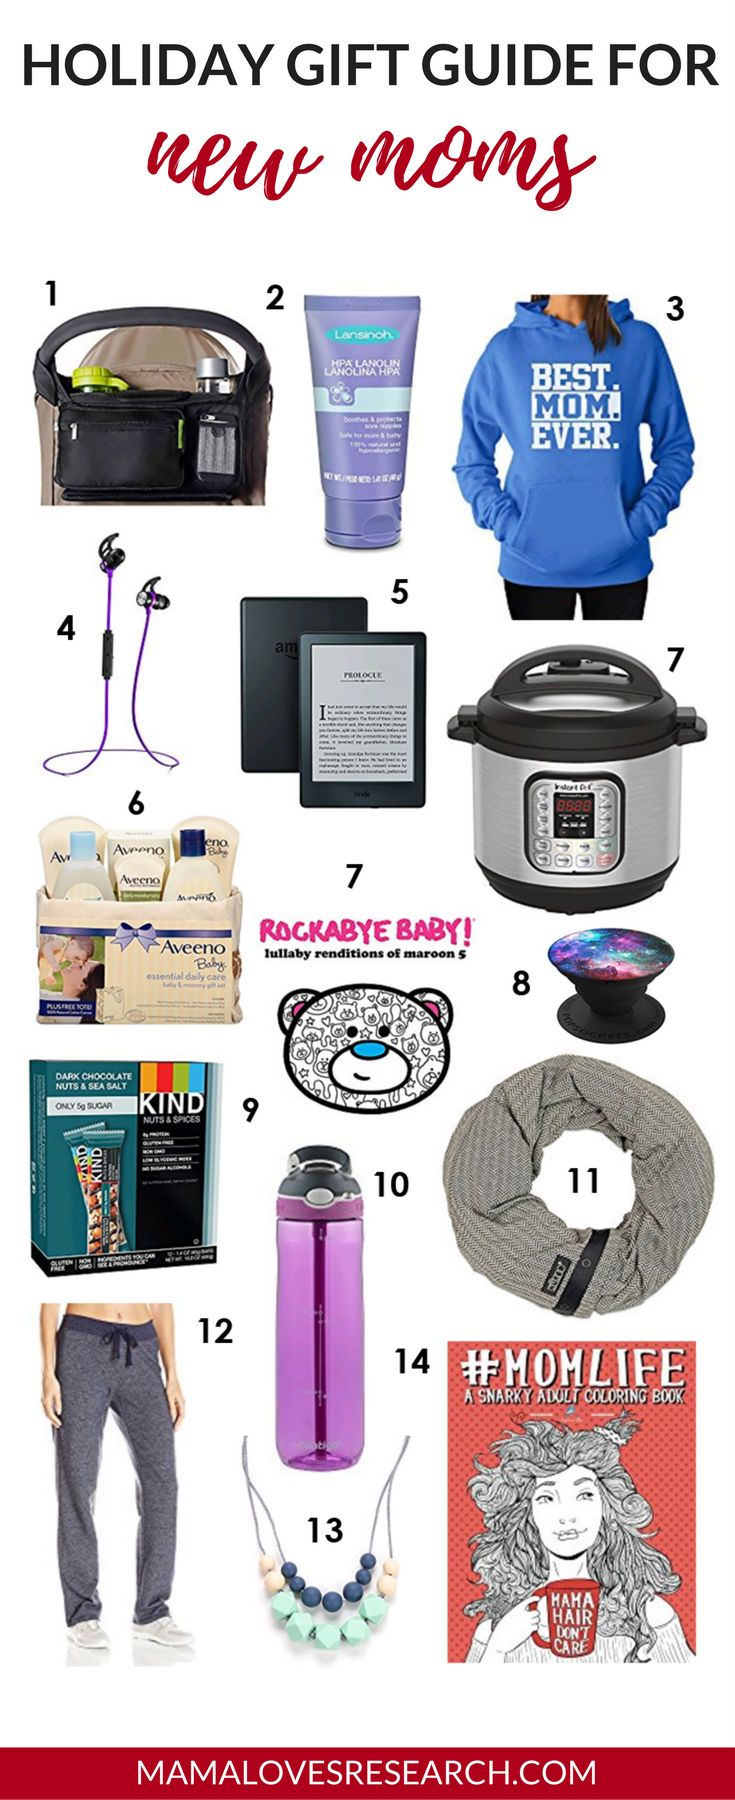 Holiday Gift Guide for New Moms - Mama Loves Research